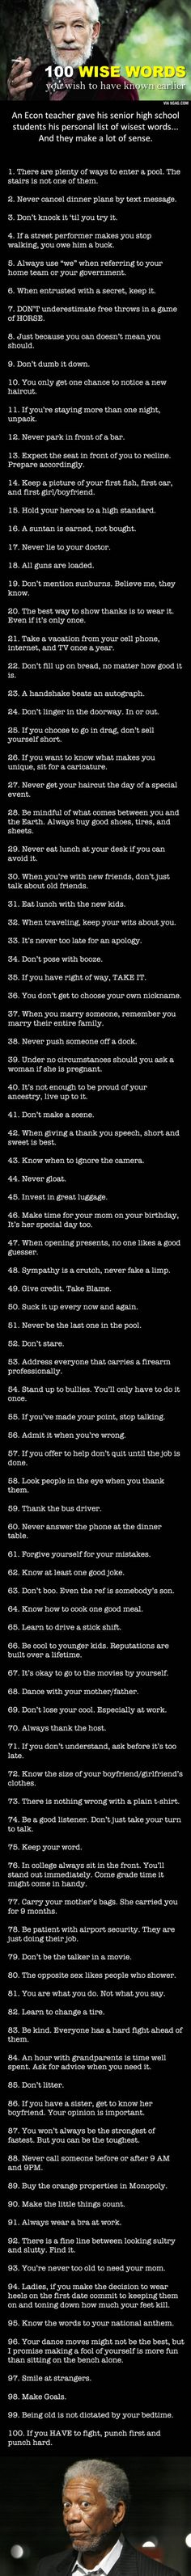 I wish I learned these earlier...